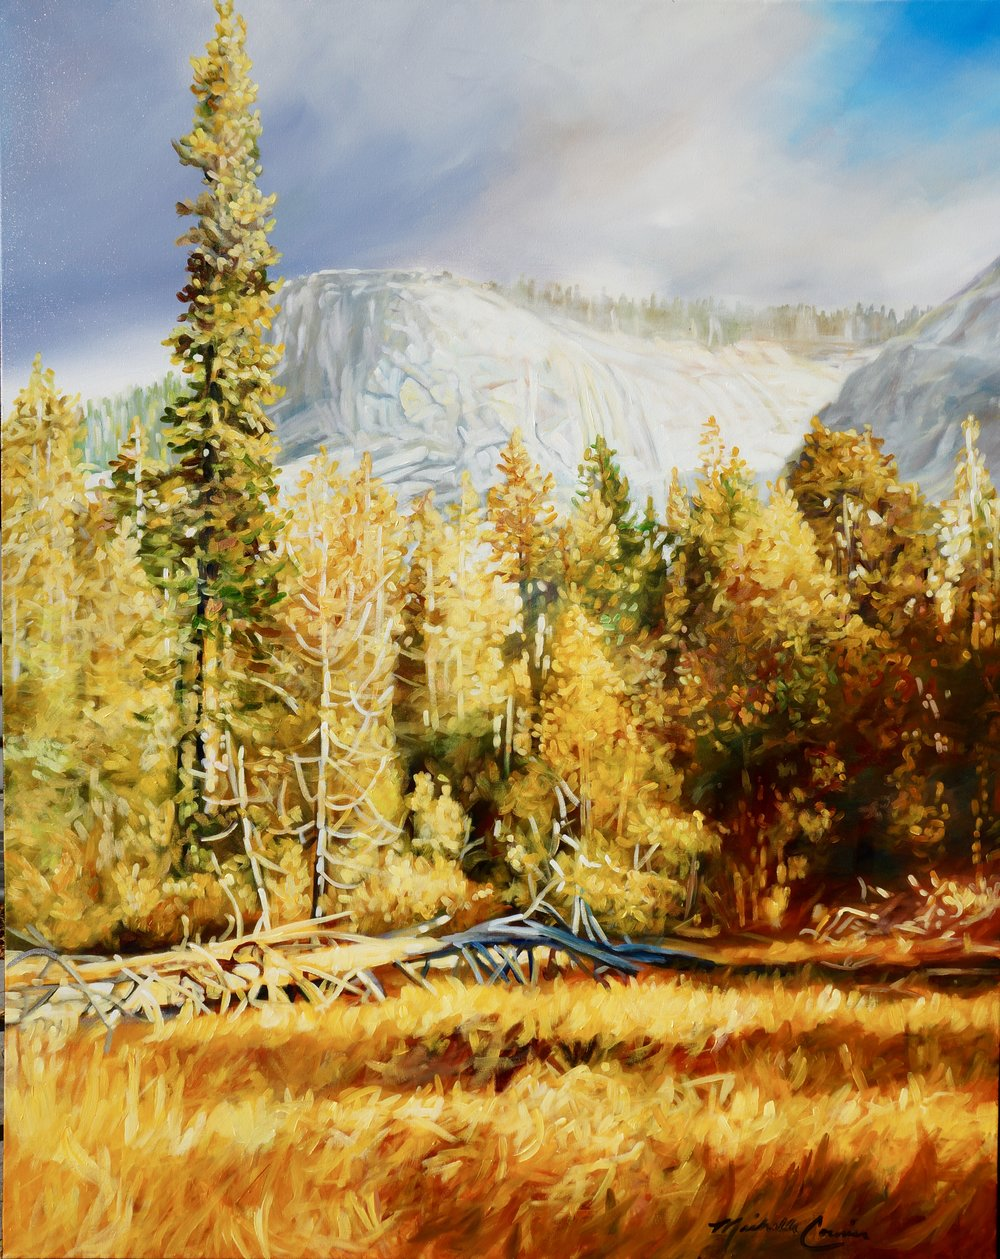 TUOLUMNE MEADOWS 48x60 IN ACRYLIC ON CANVAS $9,300  PRINTS AVAILABLE IN VARIES SIZES ON PAPER/CANVAS